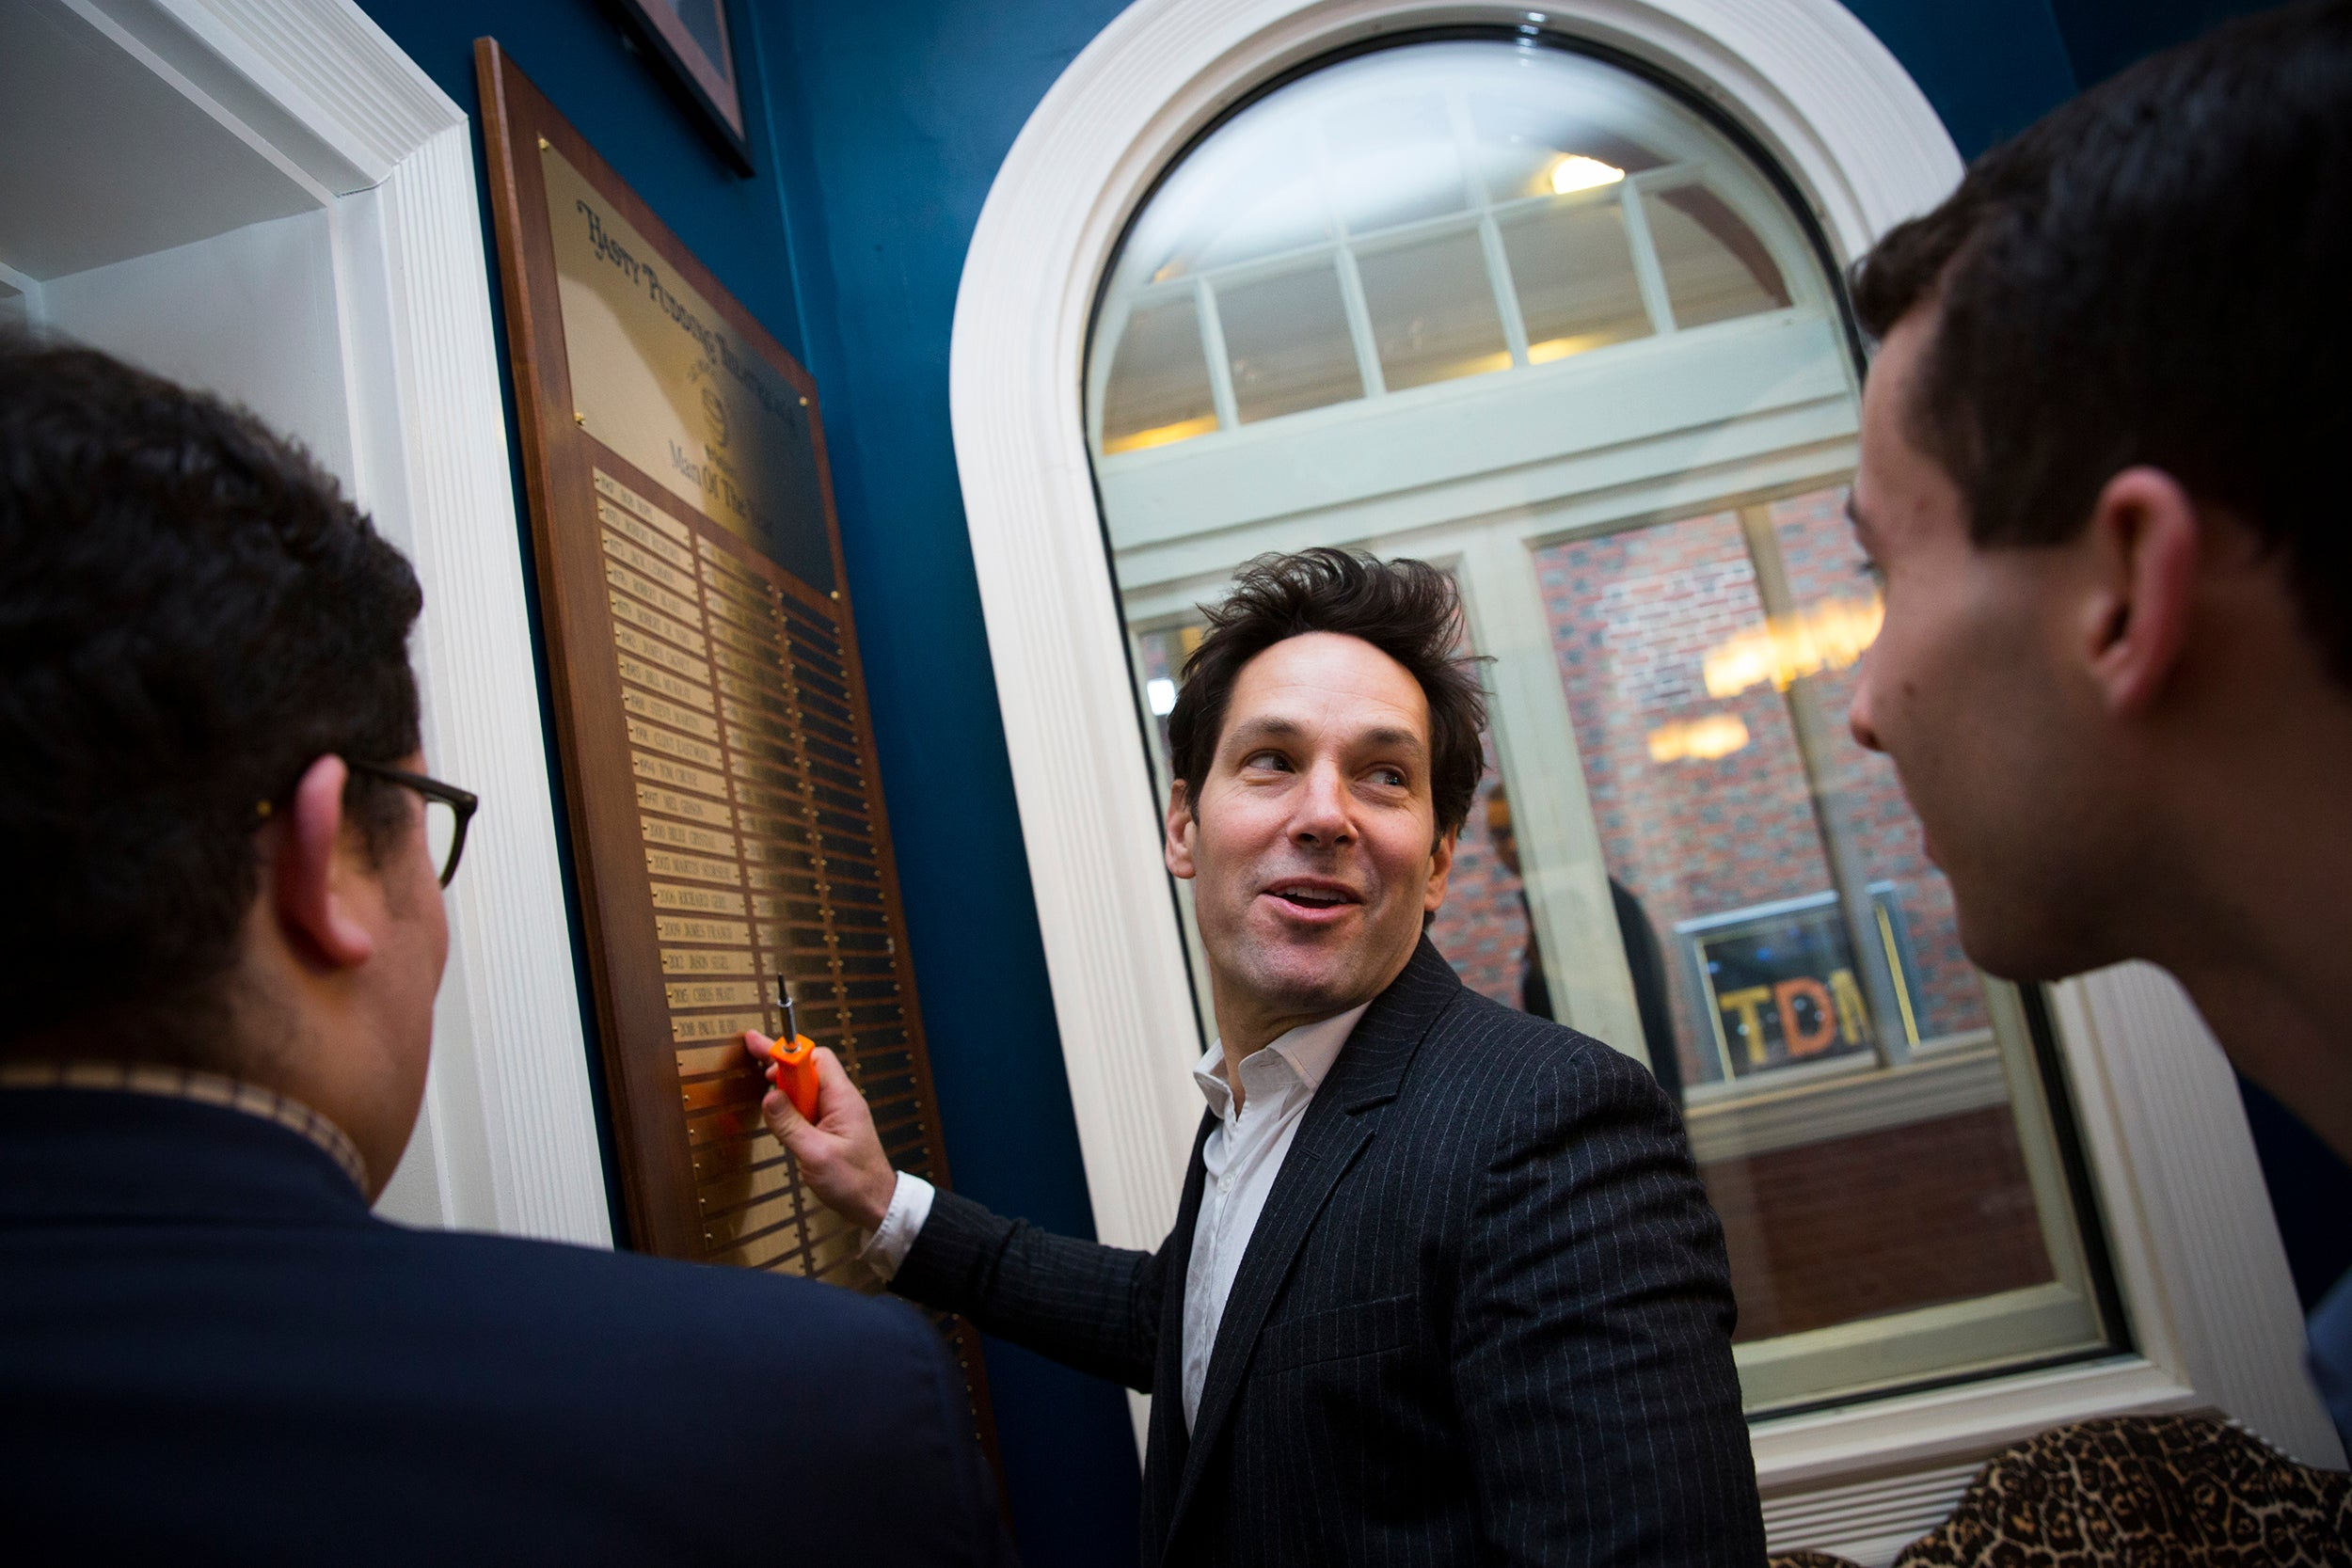 Paul Rudd honored as Hasty Pudding's Man of the Year